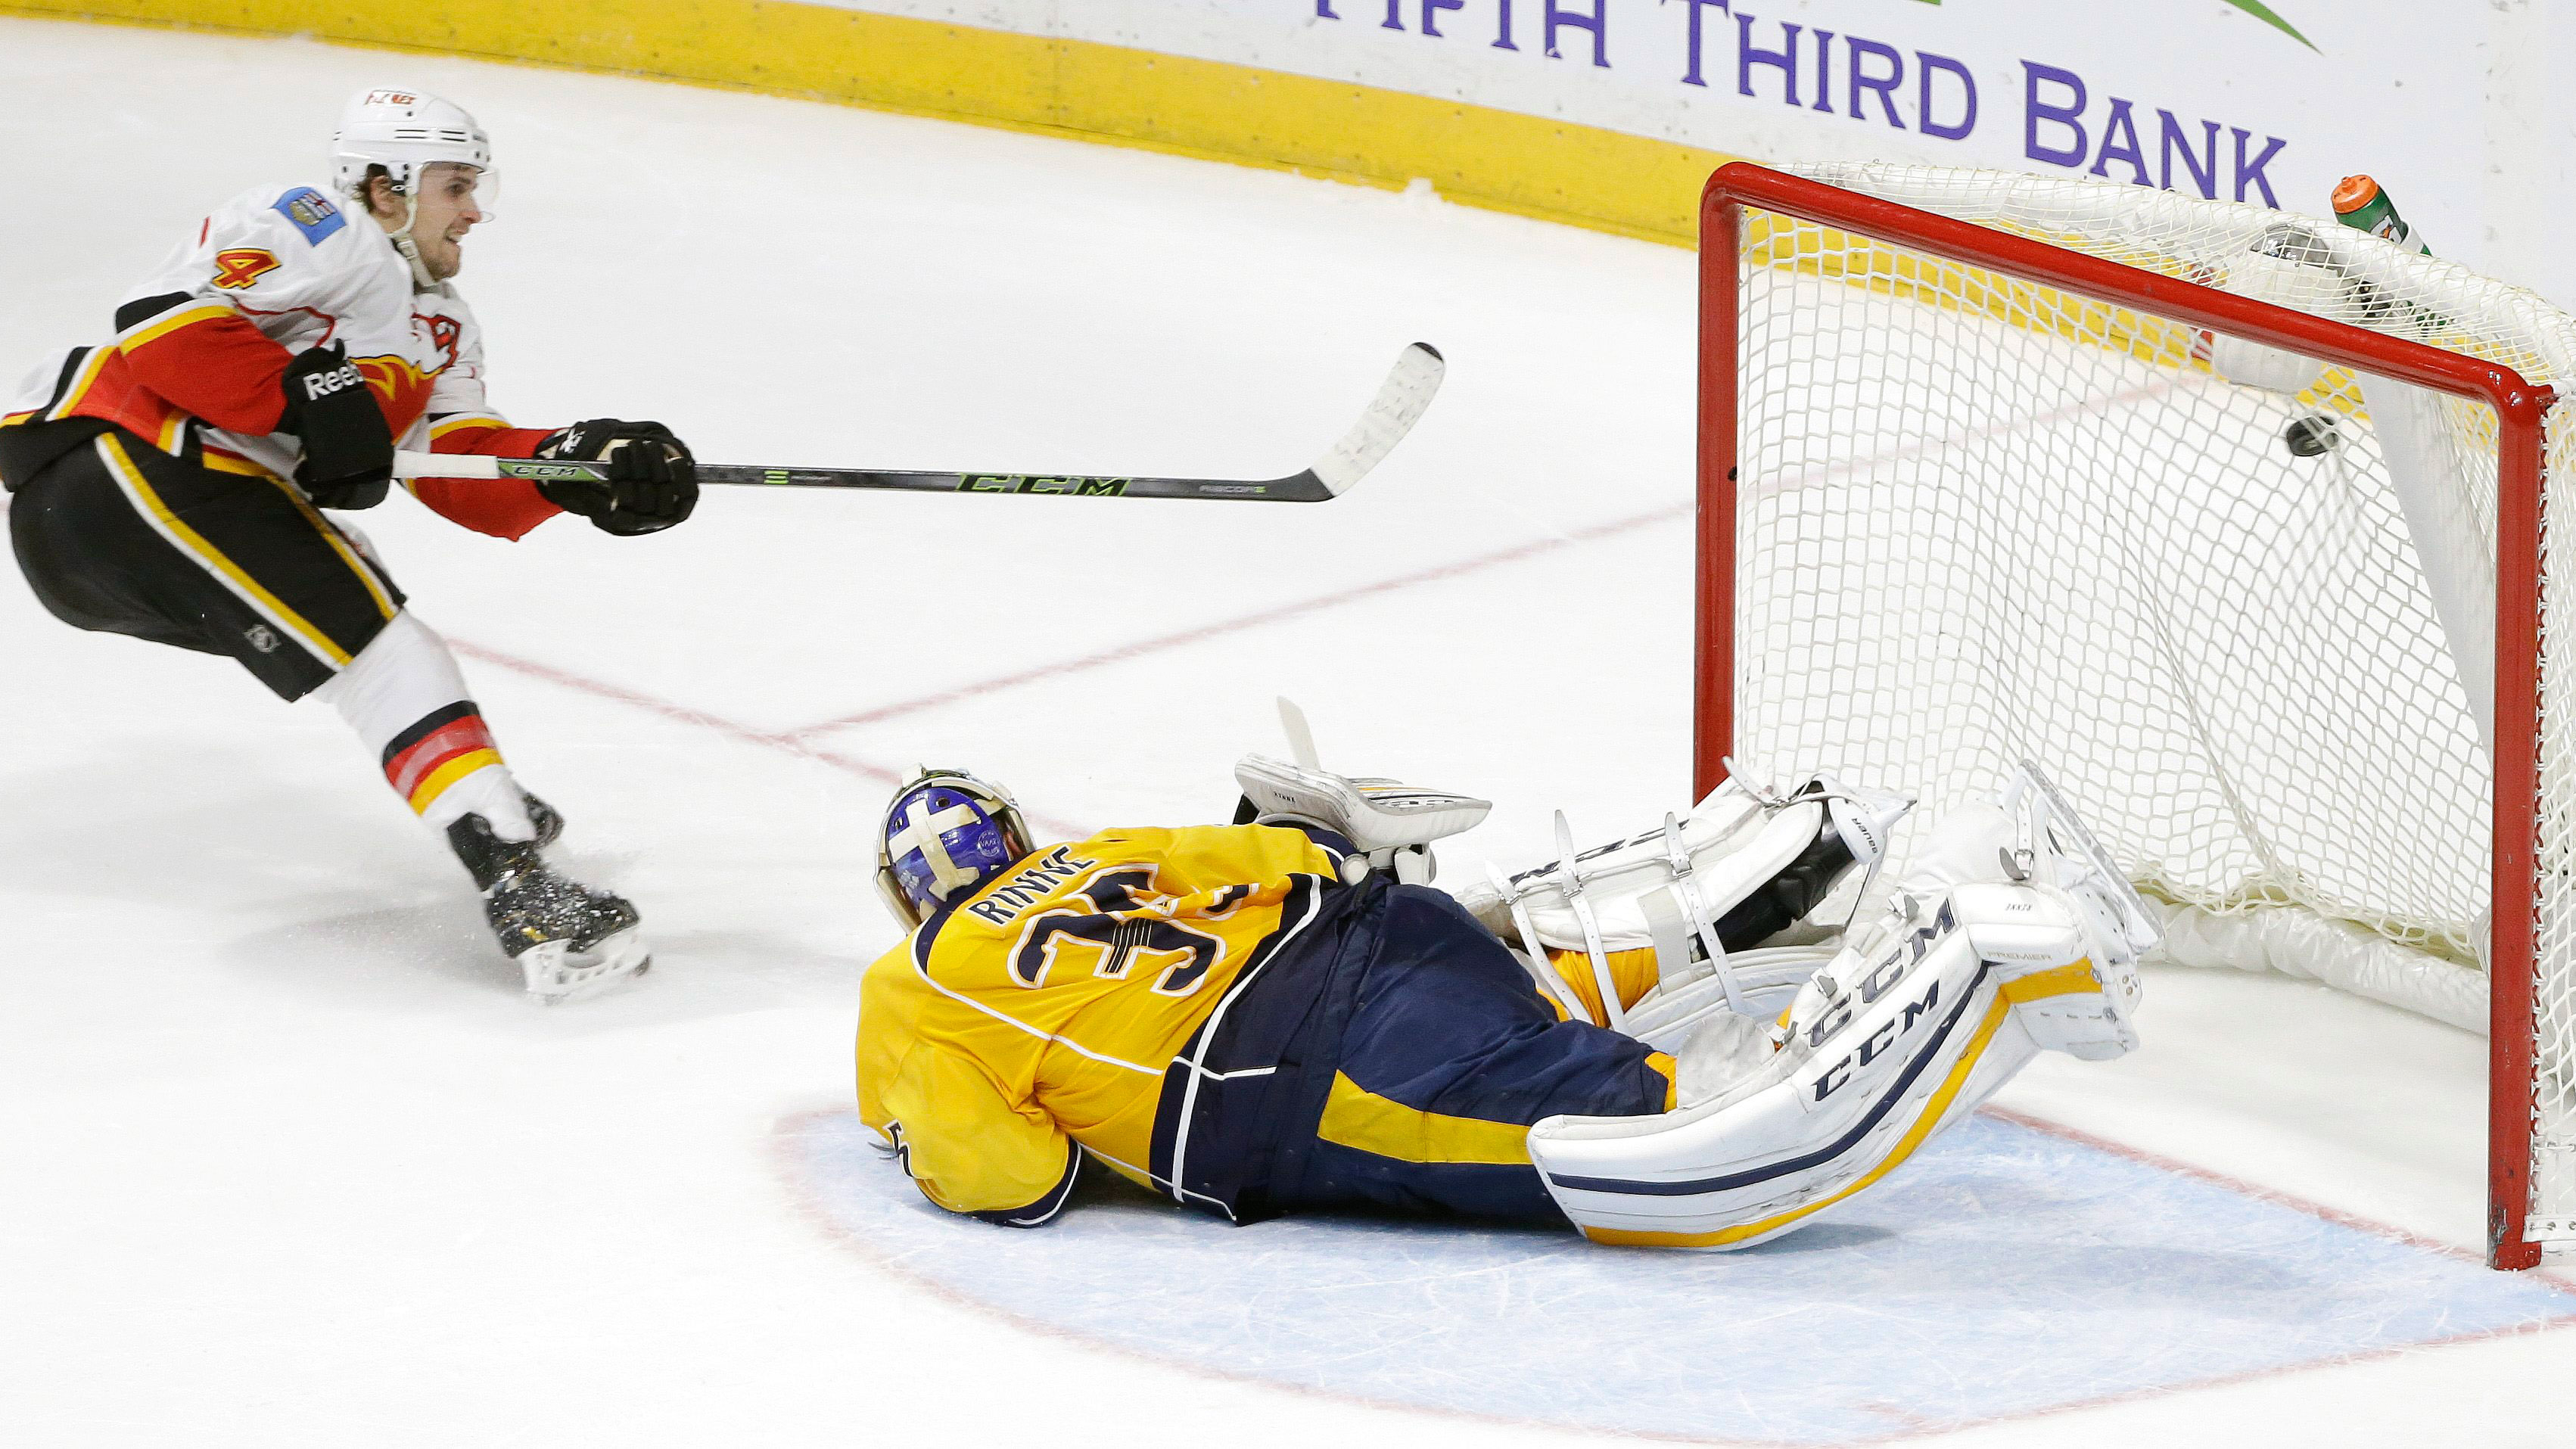 Flames' Kris Russell scores on Predators' goaltender Pekka Rinne. (Mark Humphrey/AP)